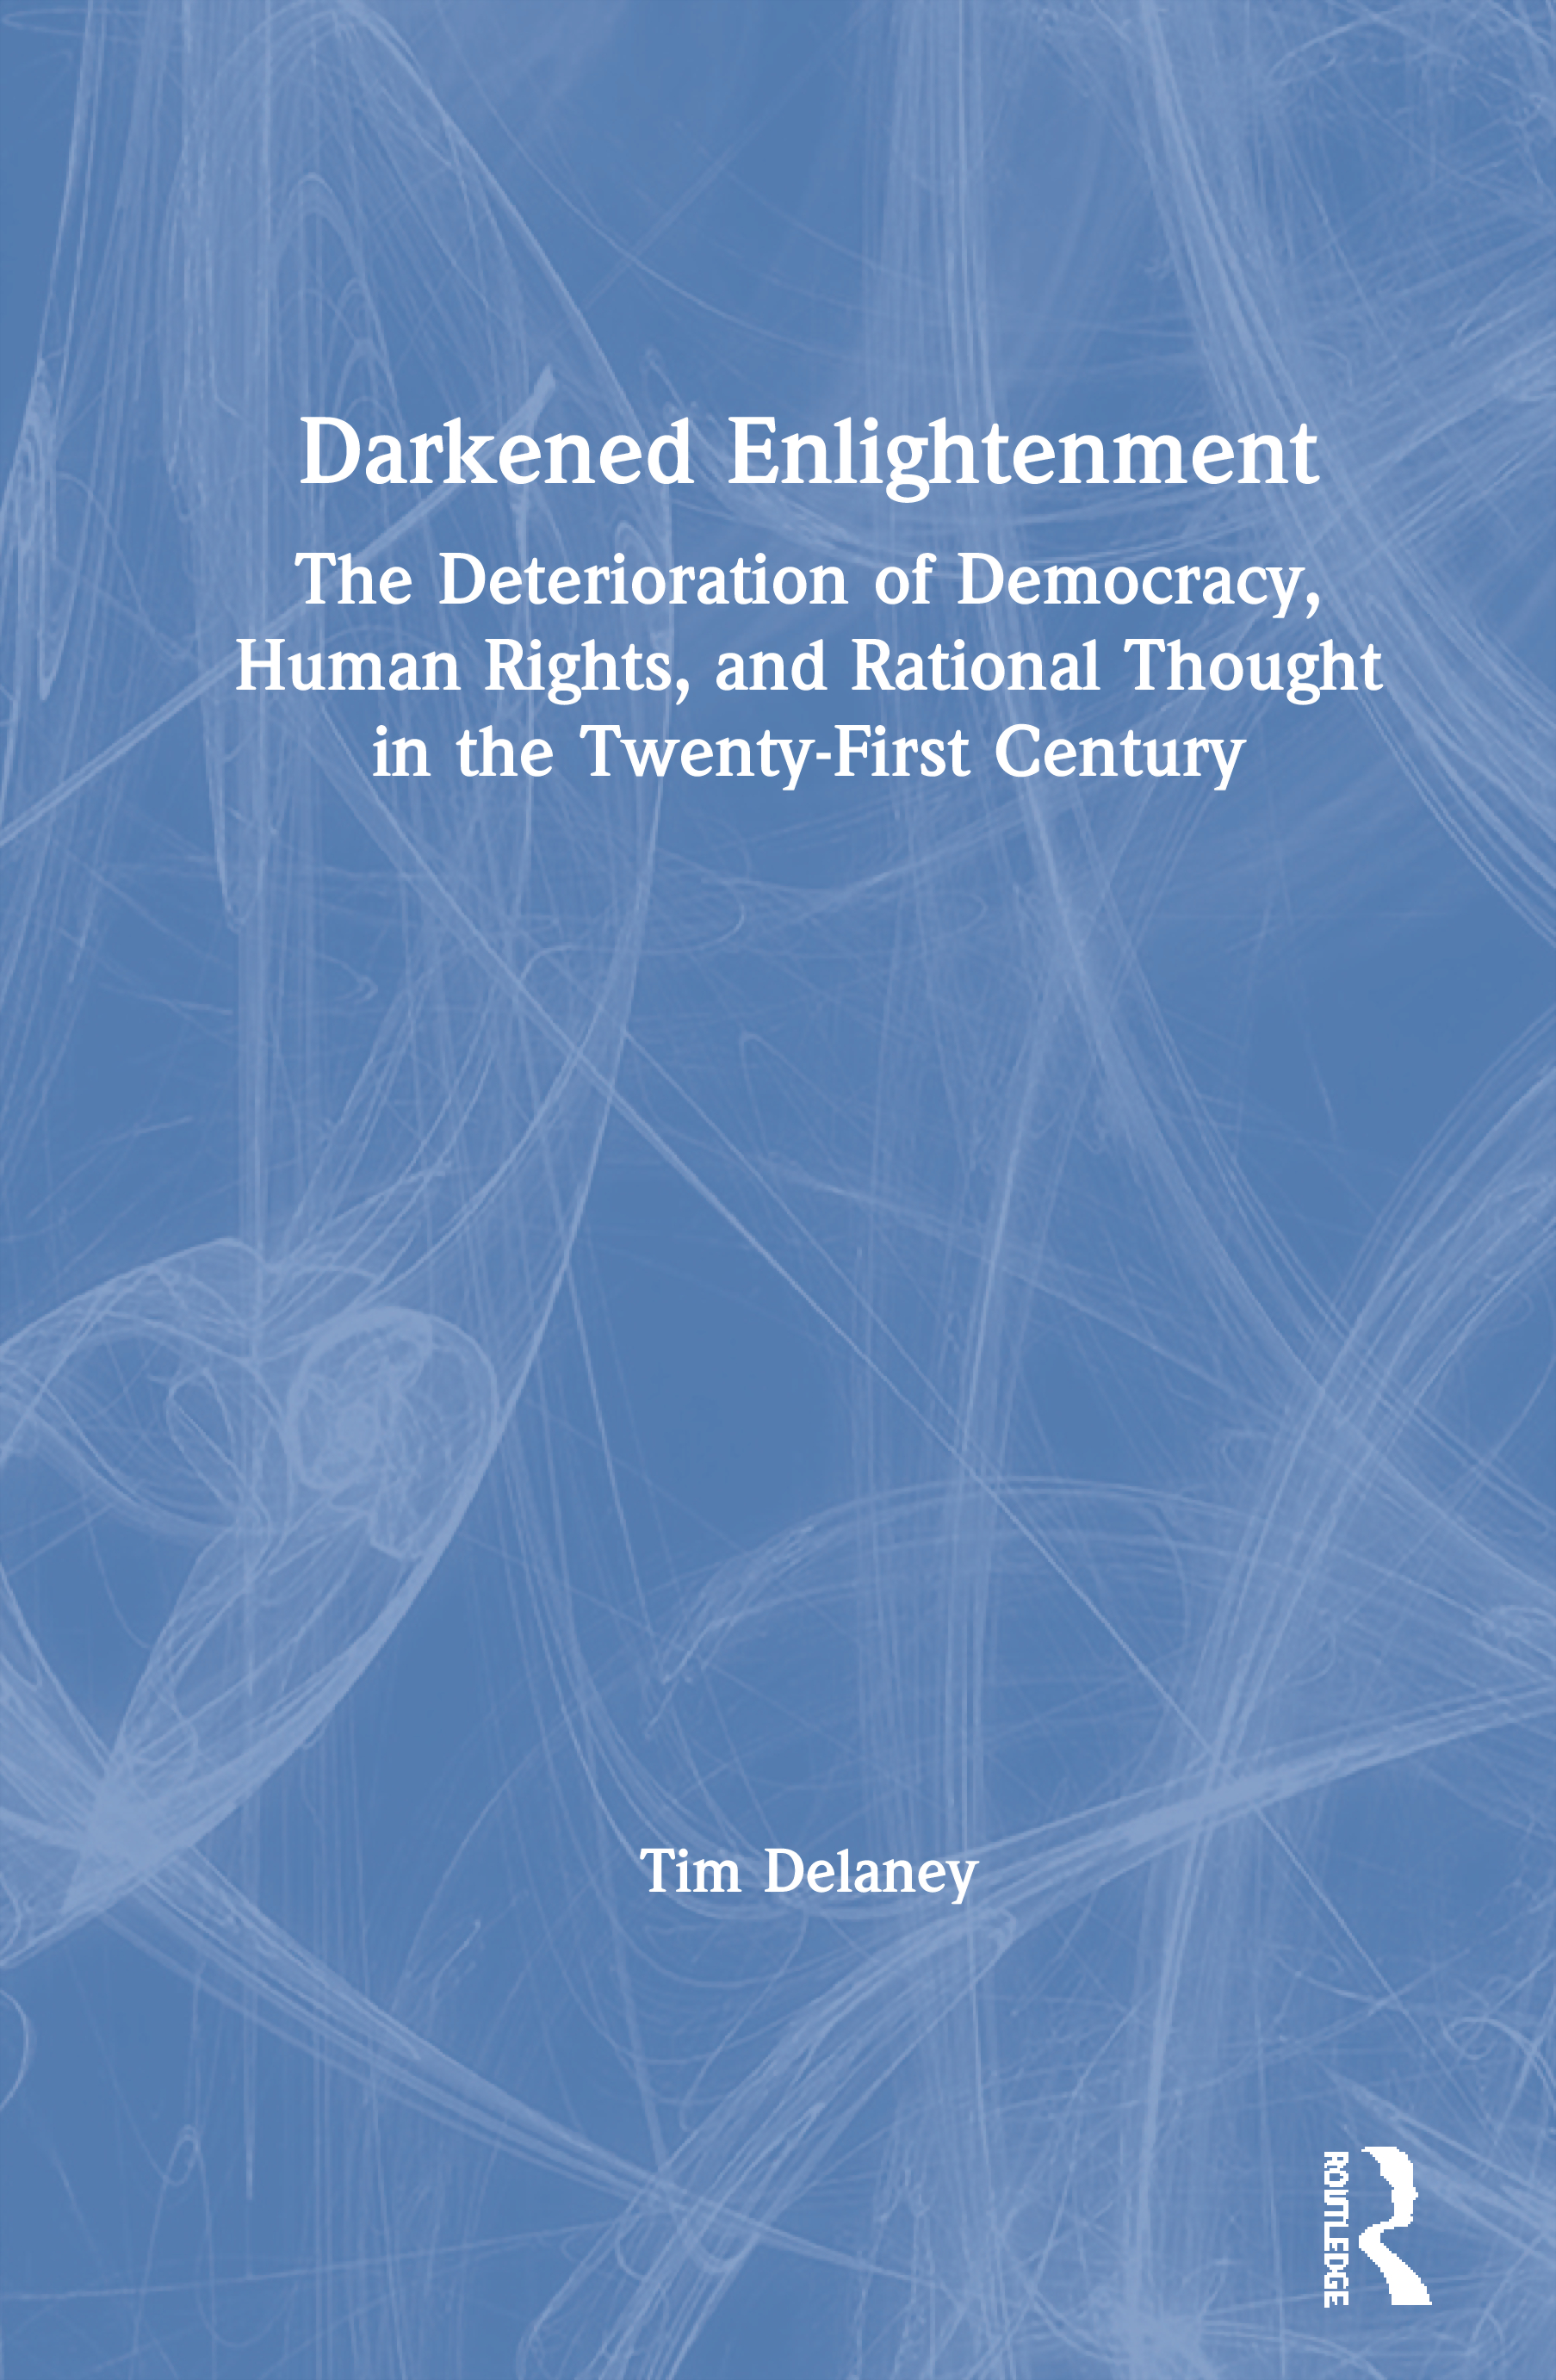 Darkened Enlightenment: The Deterioration of Democracy, Human Rights, and Rational Thought in the Twenty-First Century book cover